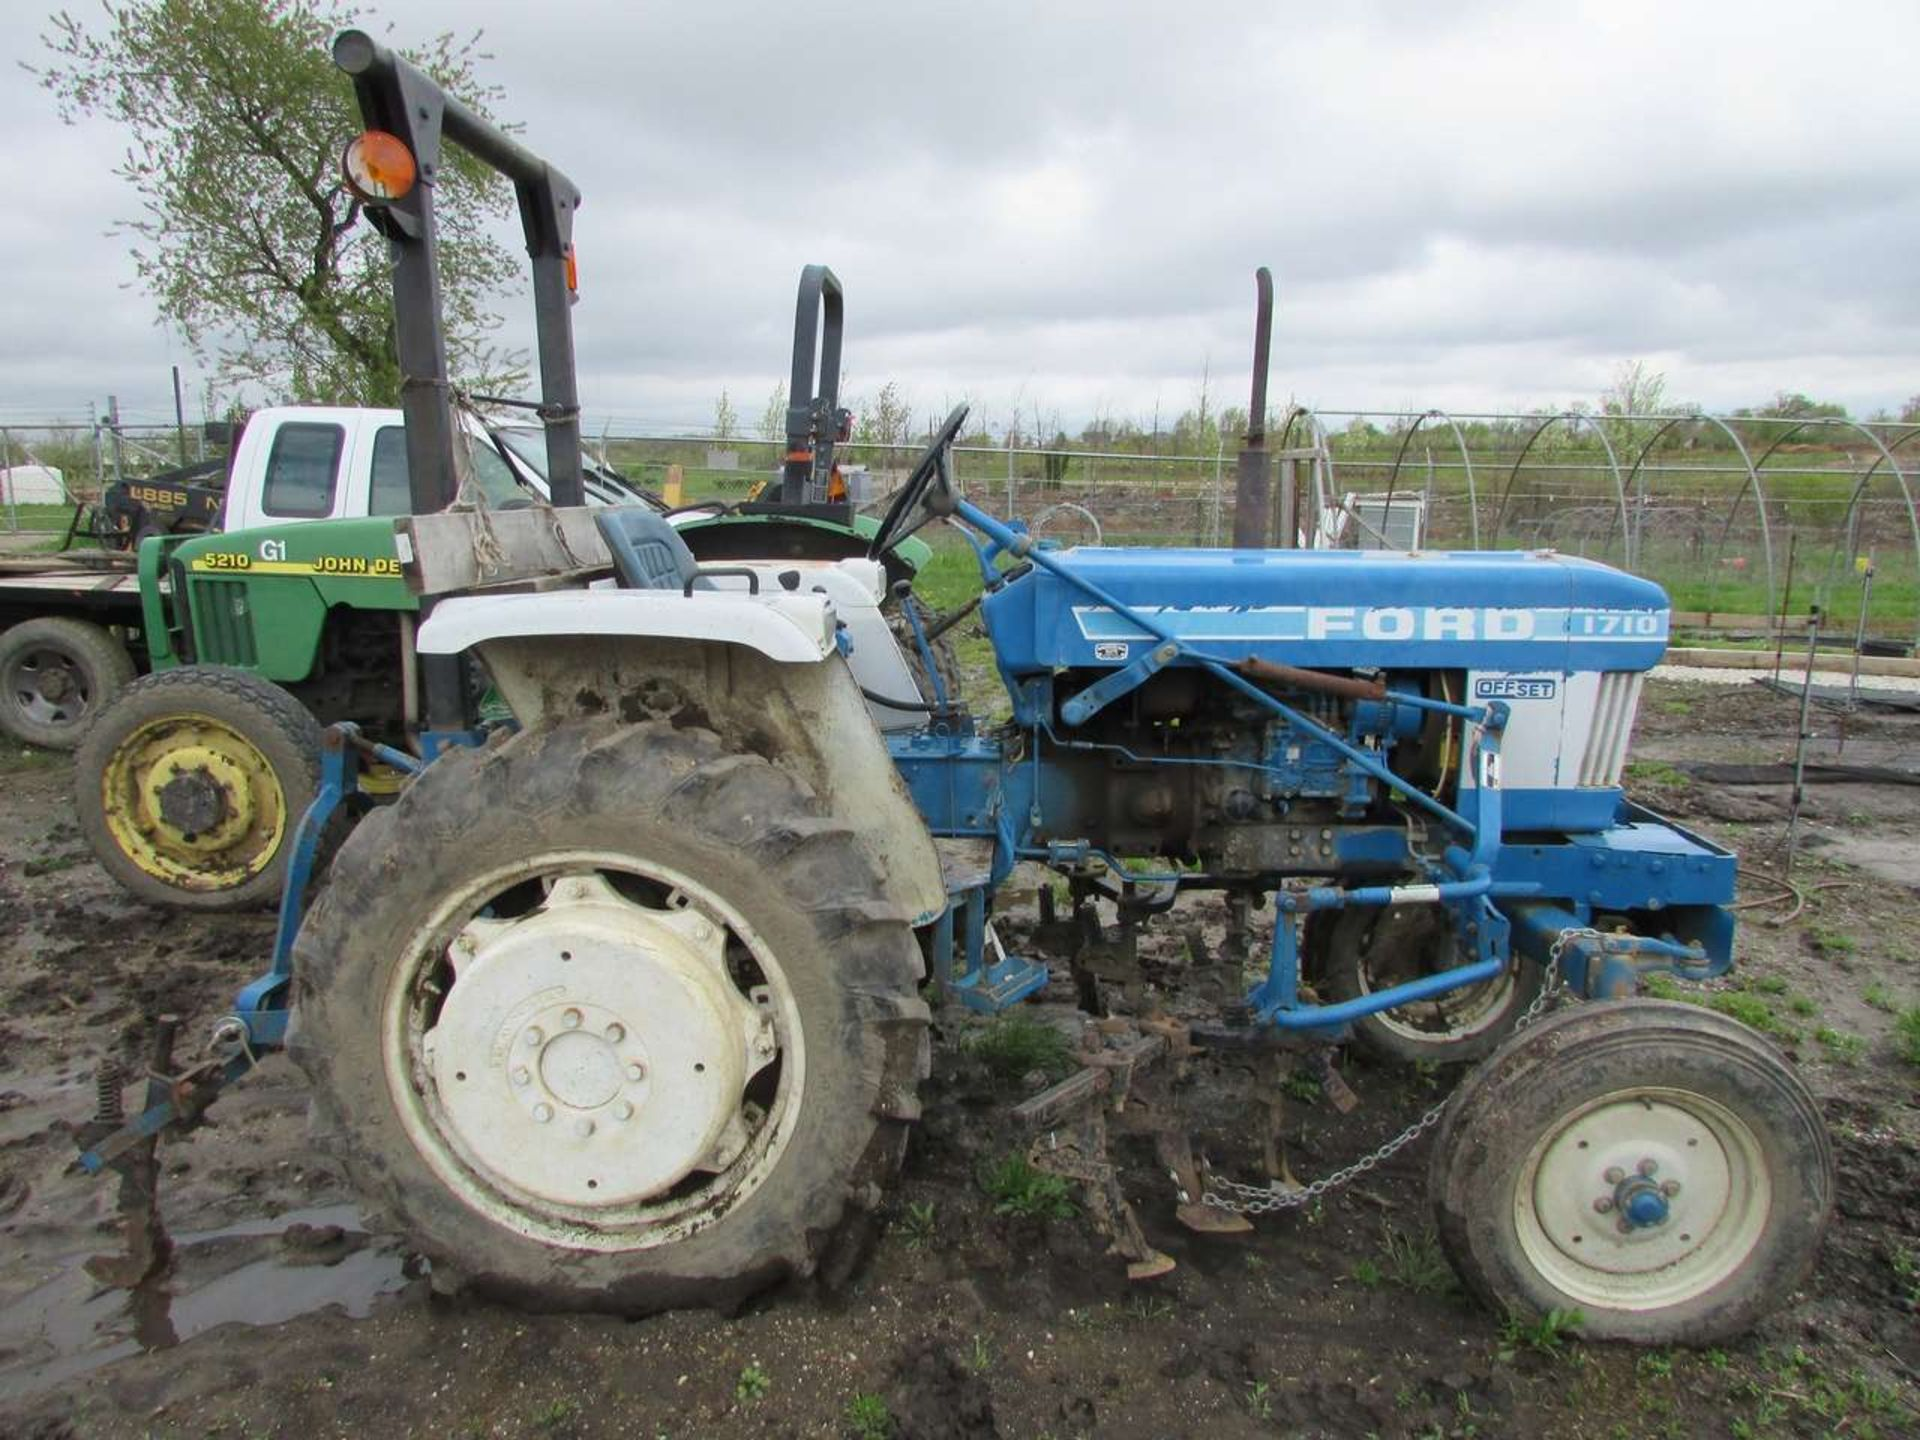 Lot 53 - Ford 1710 Tractor